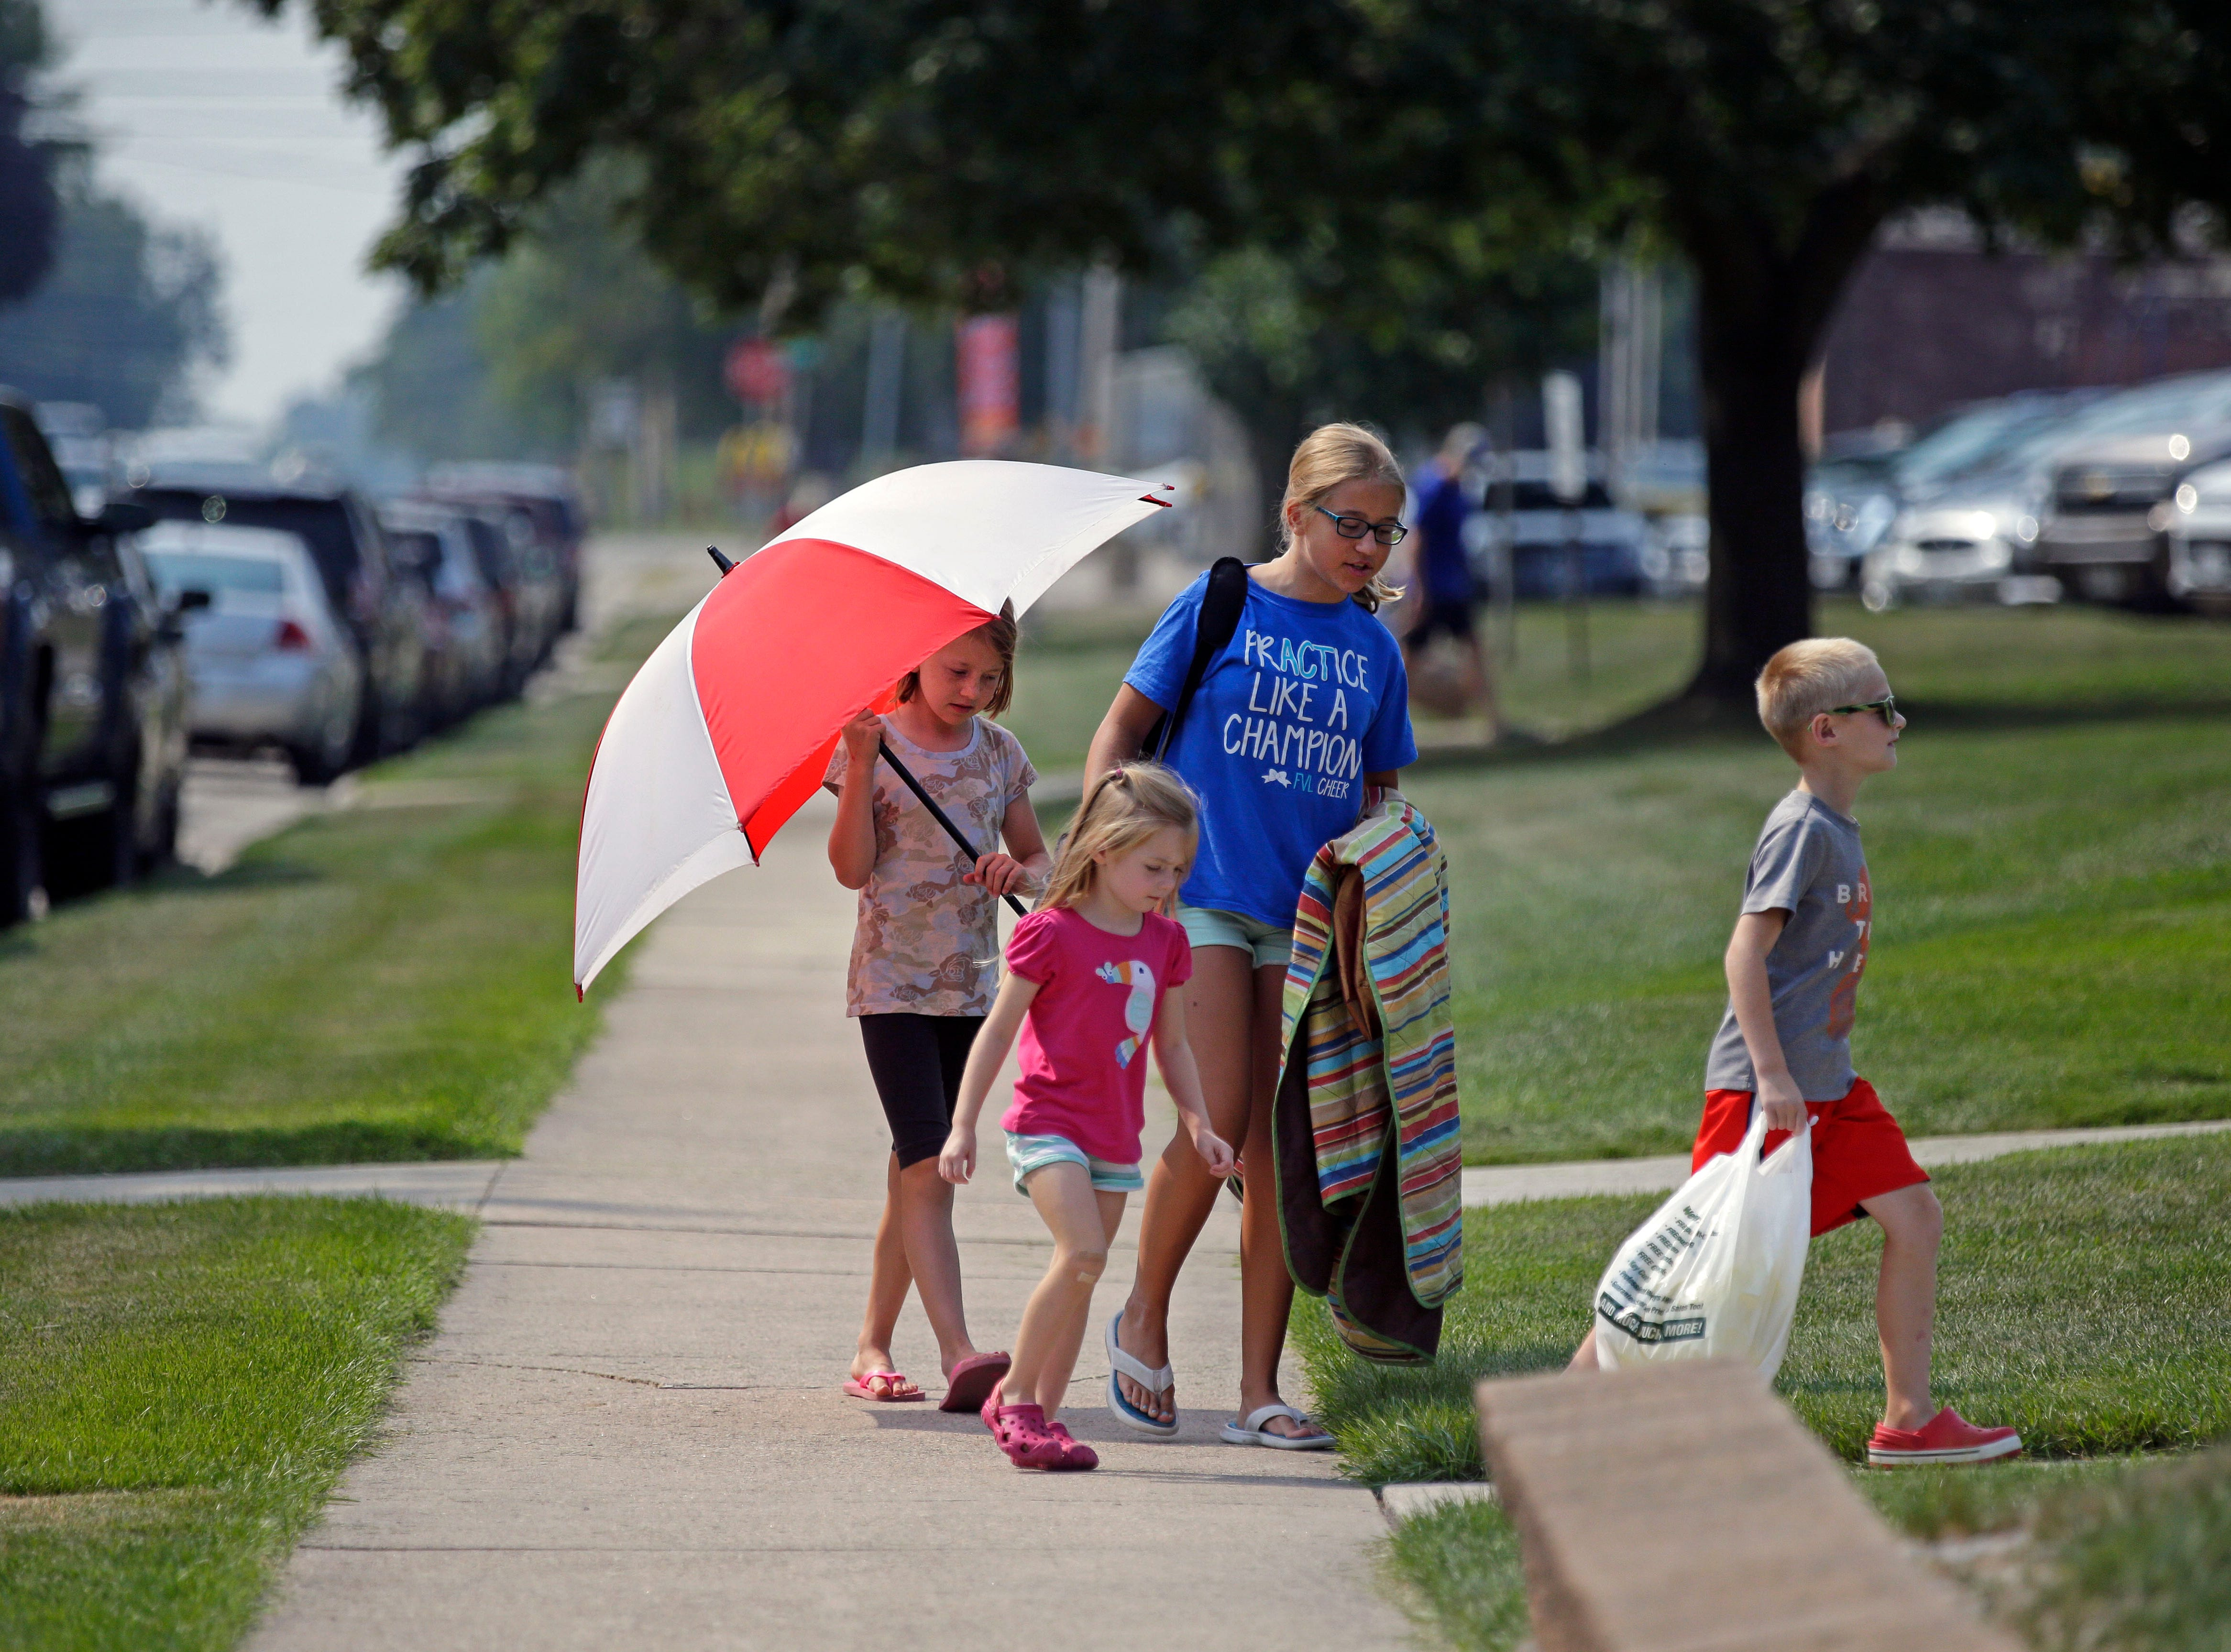 Rachel Raschka, left, Cecelia Frey, Natalie Raschka and Micah Frey make their way to the Hamburger Parade during the 30th annual Burger Fest Saturday, August 11, 2018, in Seymour, Wis.